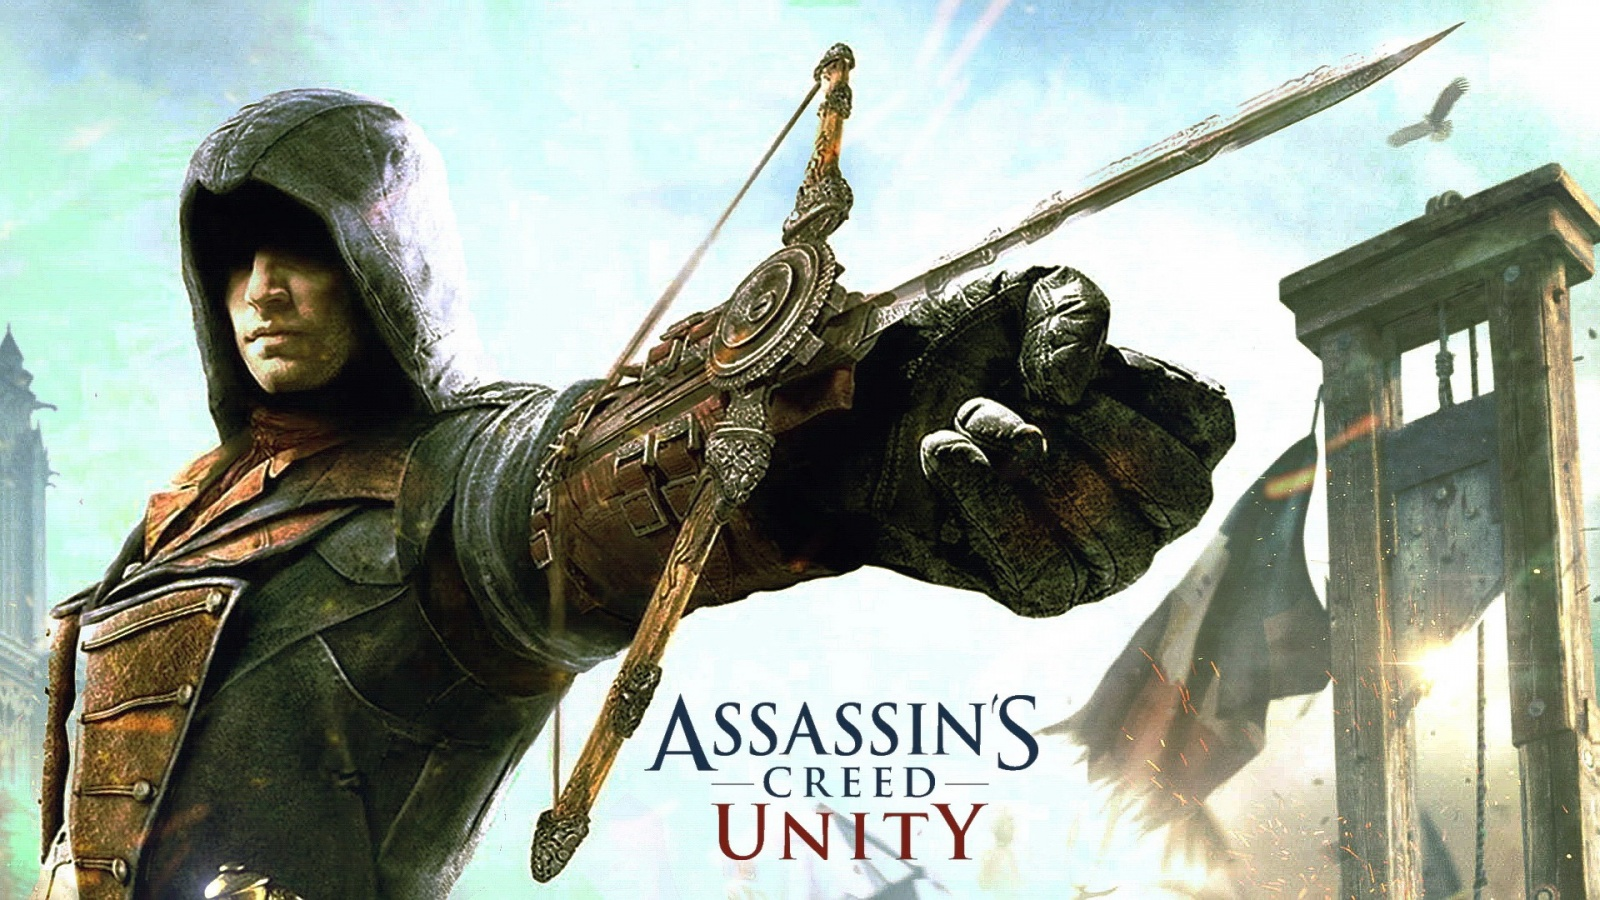 assassins_creed_unity_phantom_blade_2014-1600x900